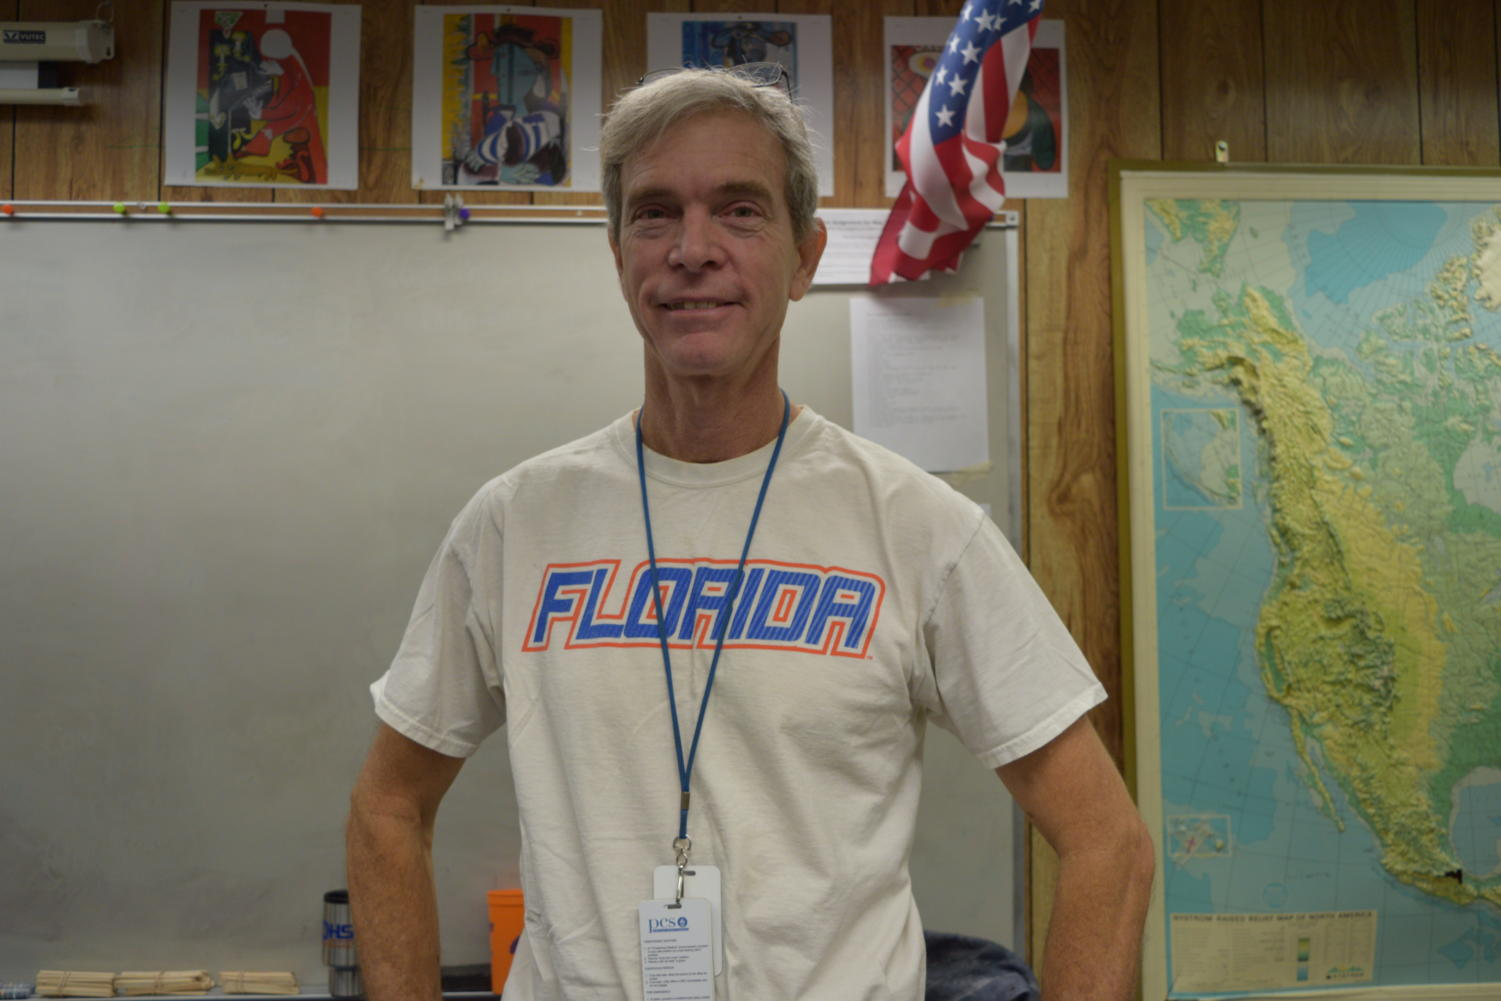 Mr. Pile is a Florida fan.